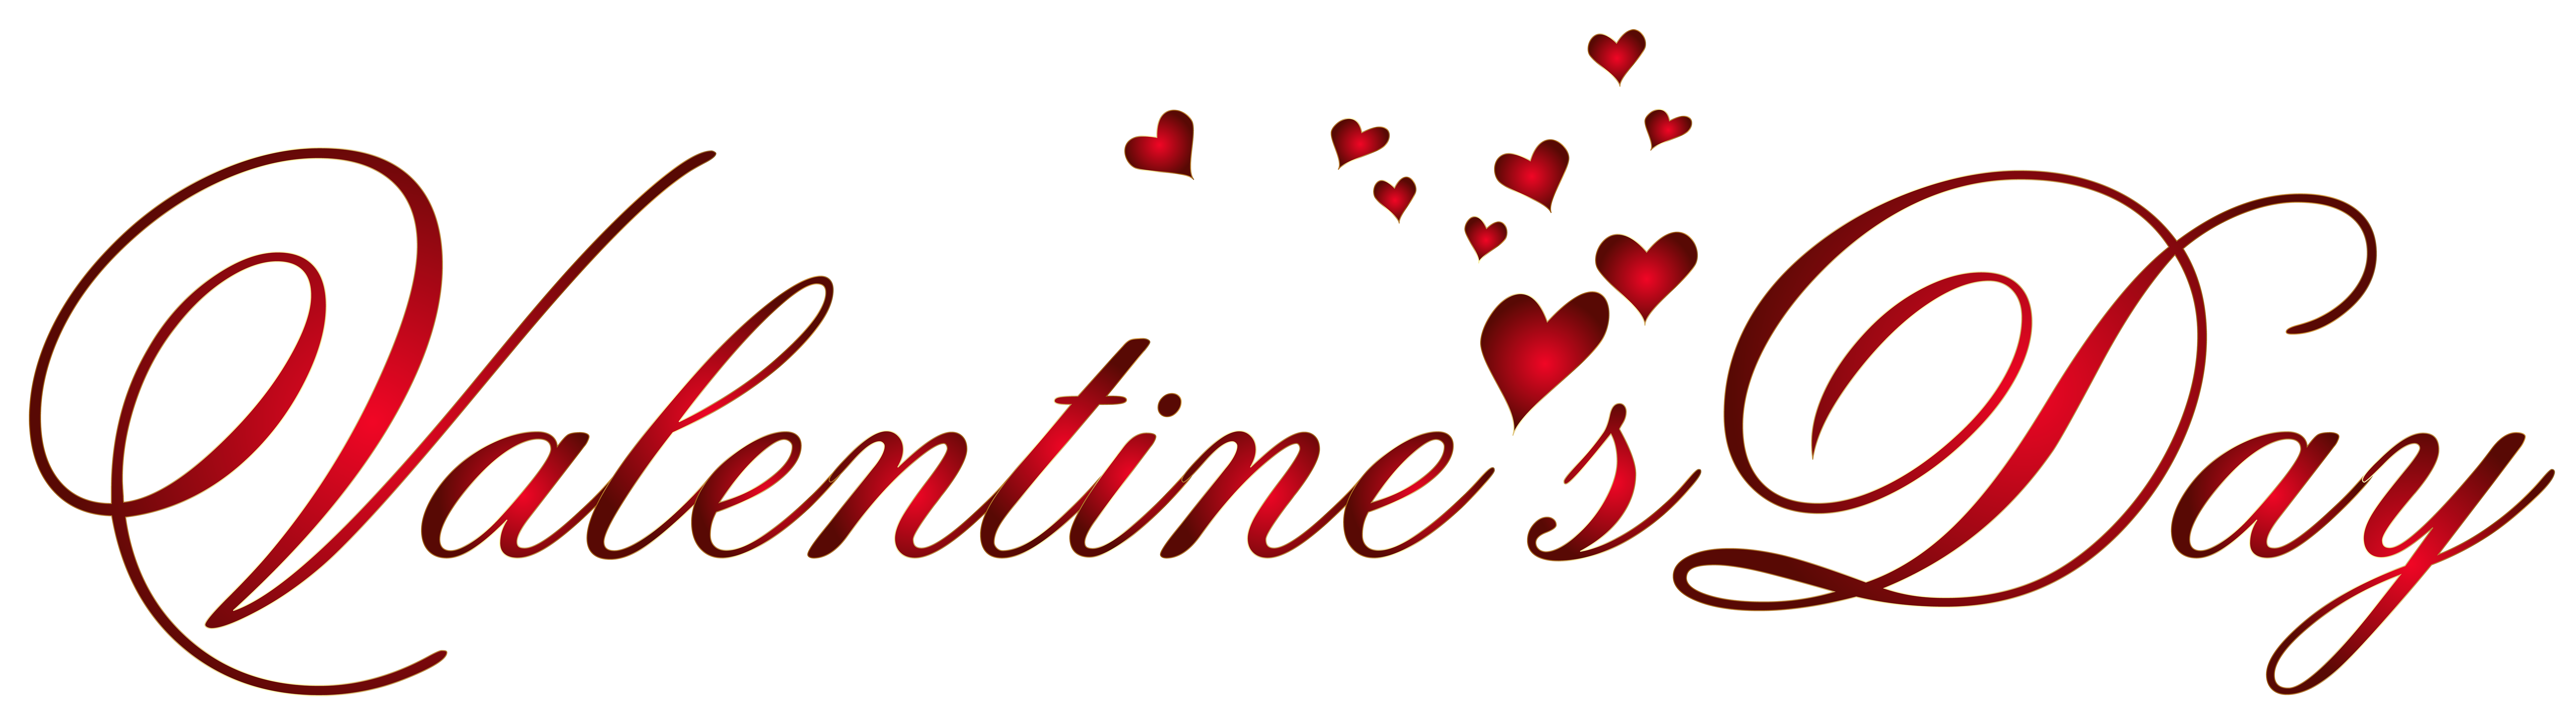 Valentineu0027s Day Transparent PNG Clip Art Image. - Valentines Day PNG HD